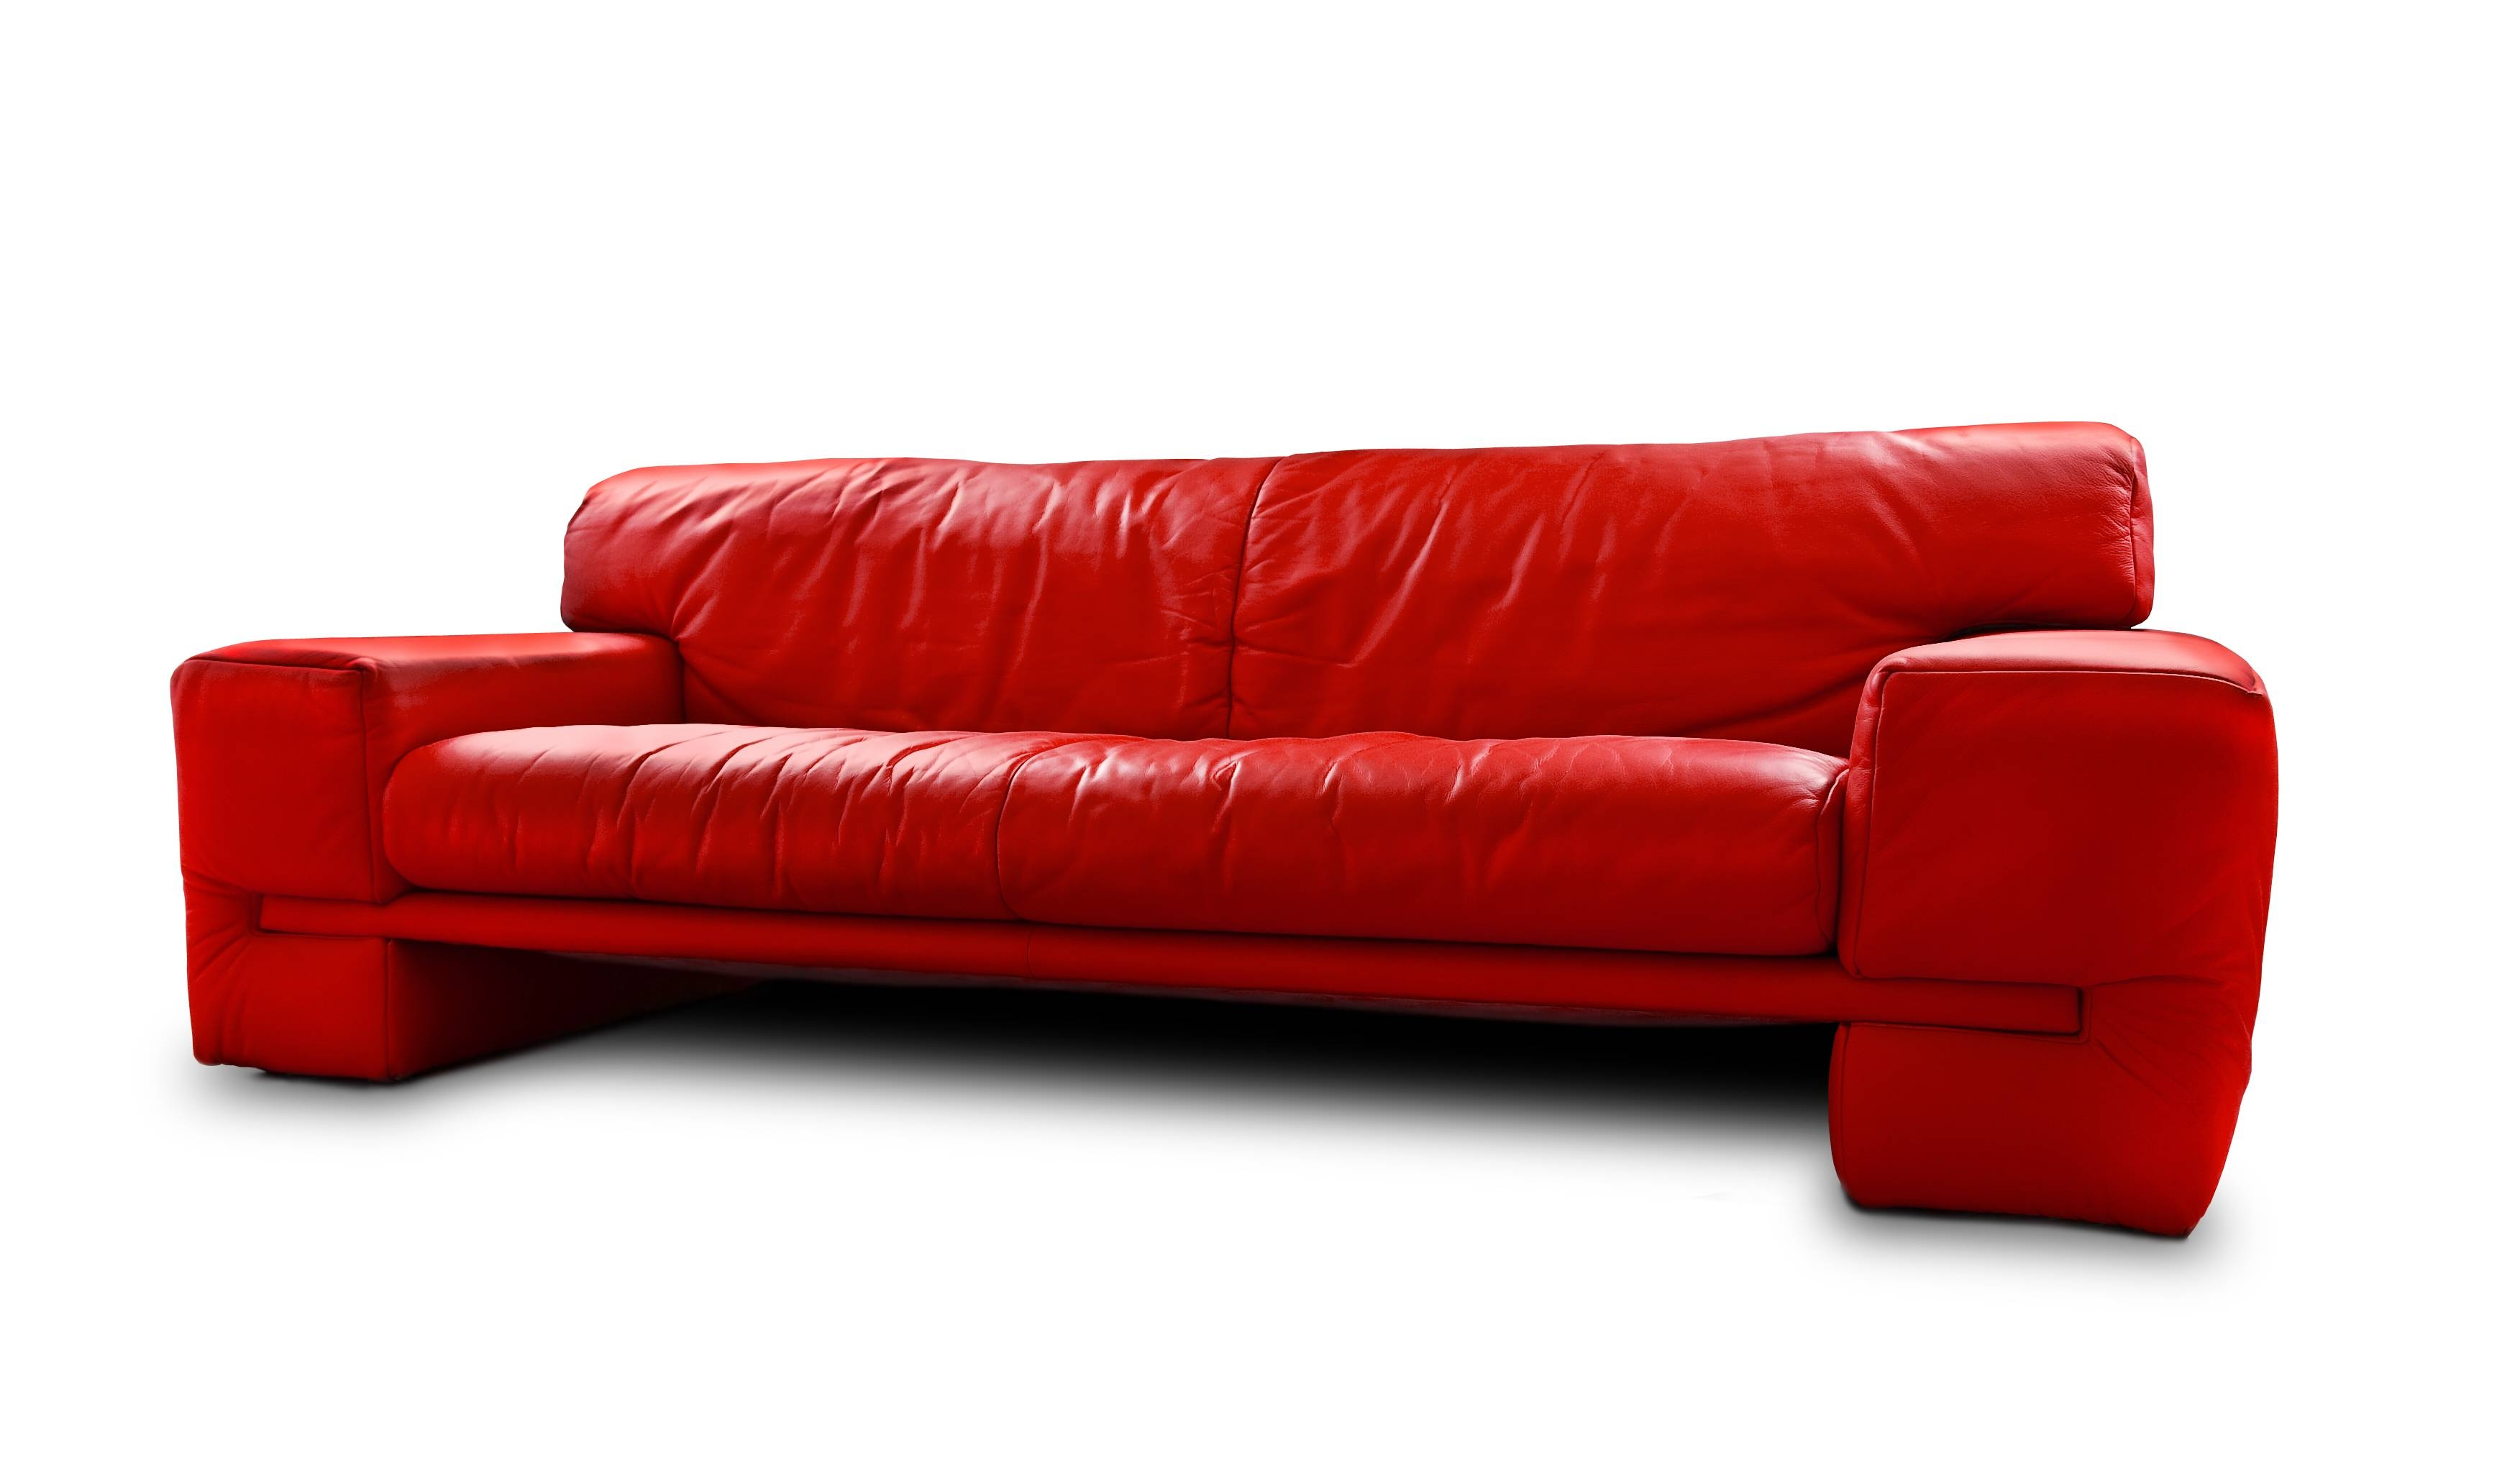 Appealing Unique Sofa Beds Pictures Ideas - Tikspor regarding Red Sofa Chairs (Image 3 of 30)